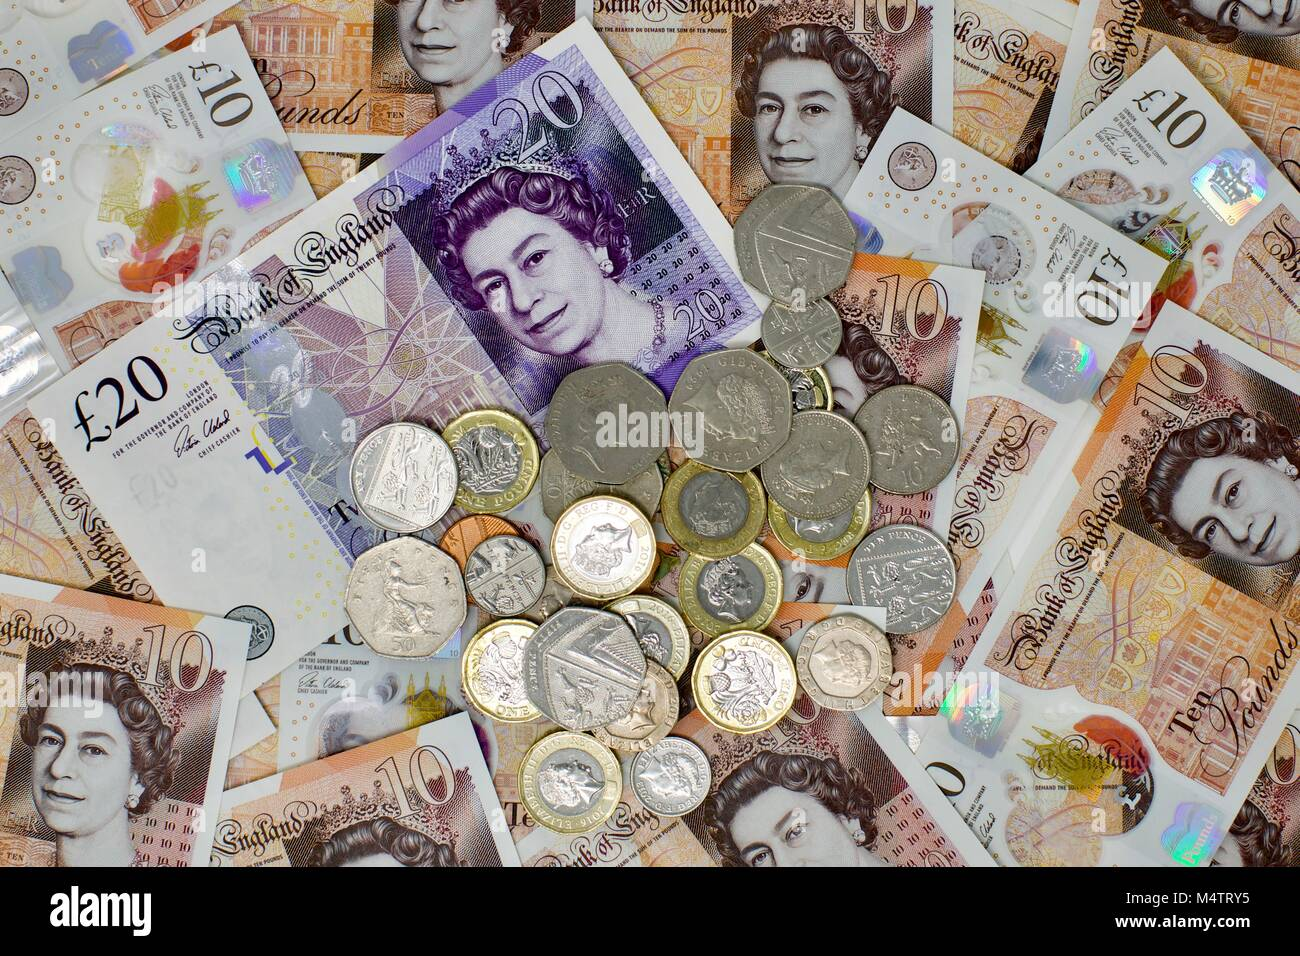 British currency, coins and notes - Stock Image